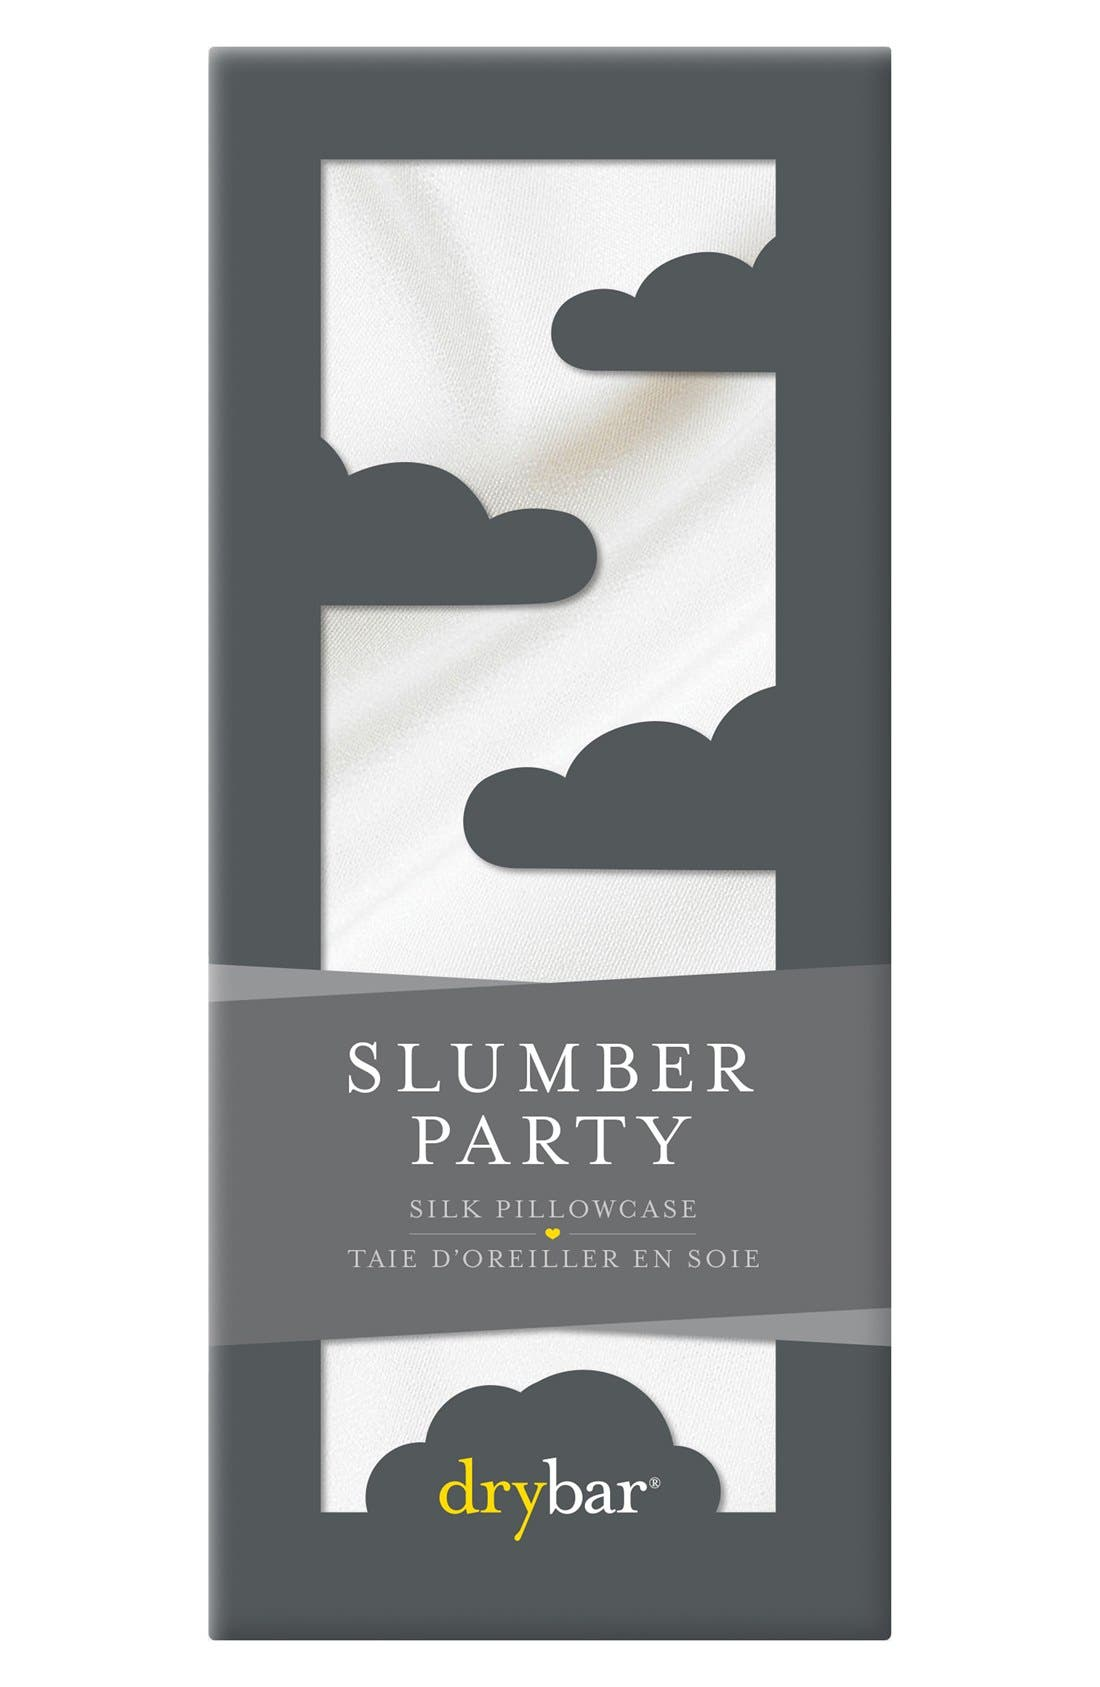 Alternate Image 1 Selected - Drybar Slumber Party Silk Pillowcase